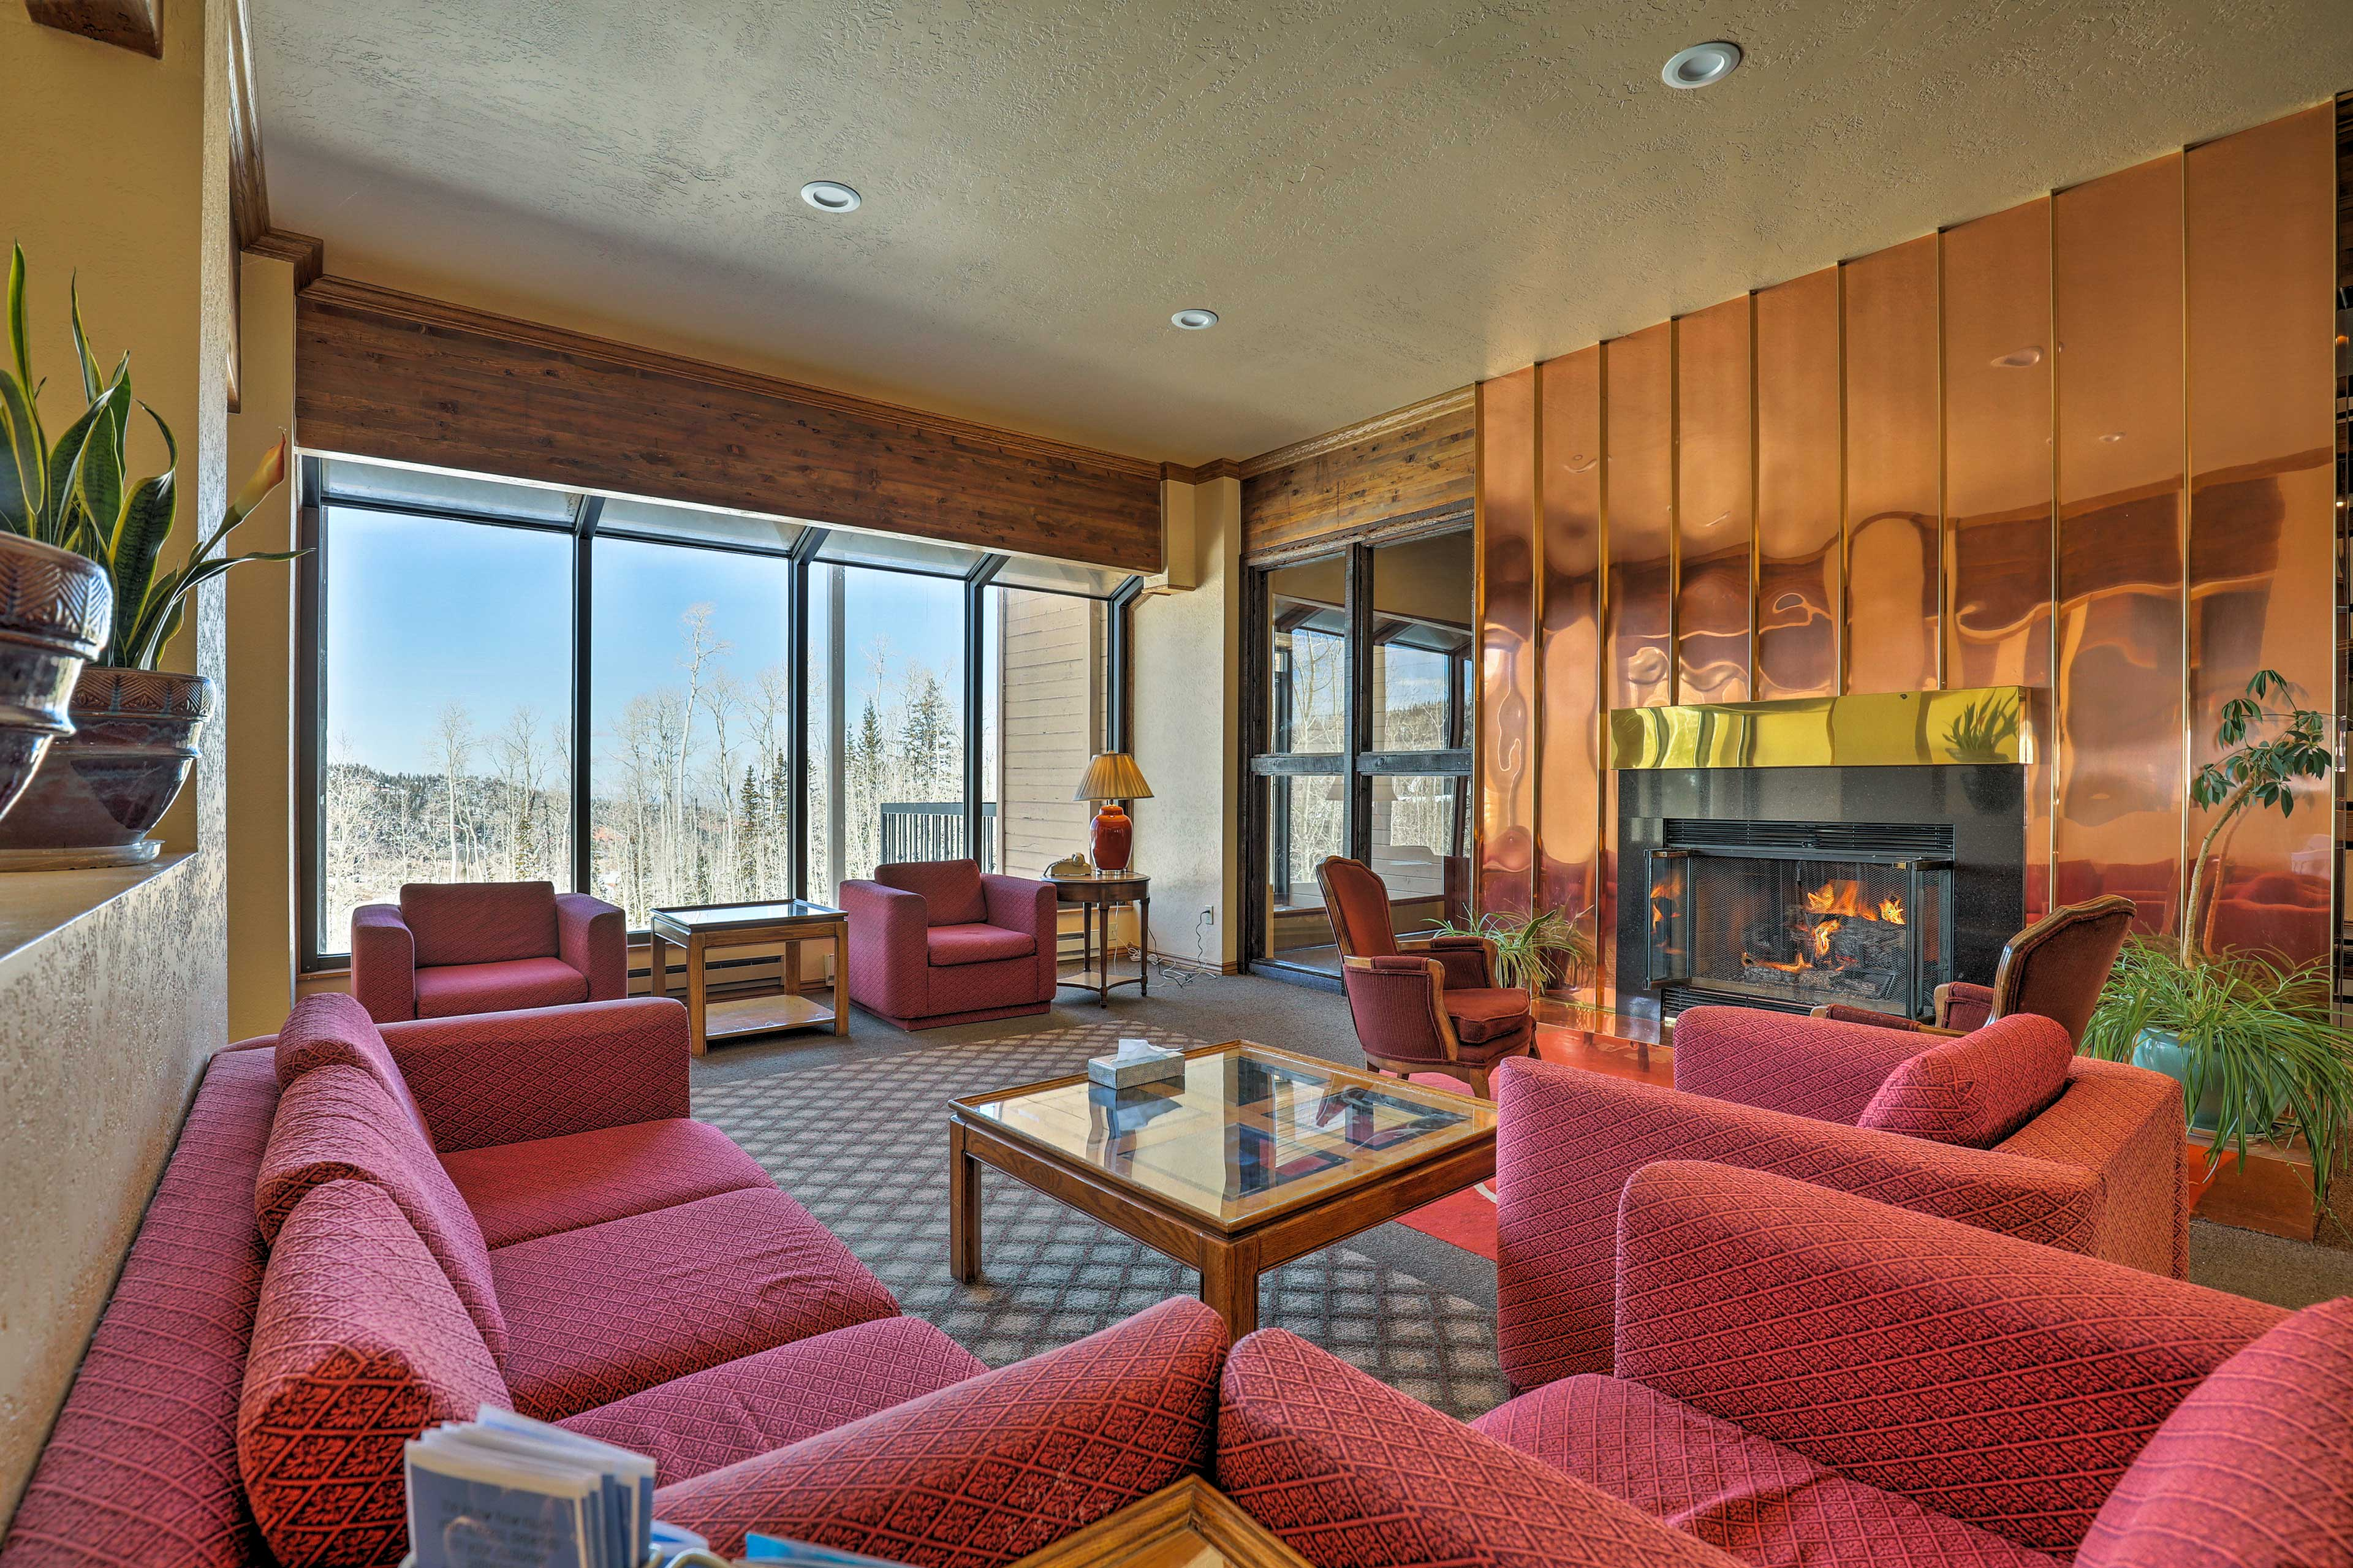 Meet fellow travelers in the common area with ample seating and a gas fireplace.